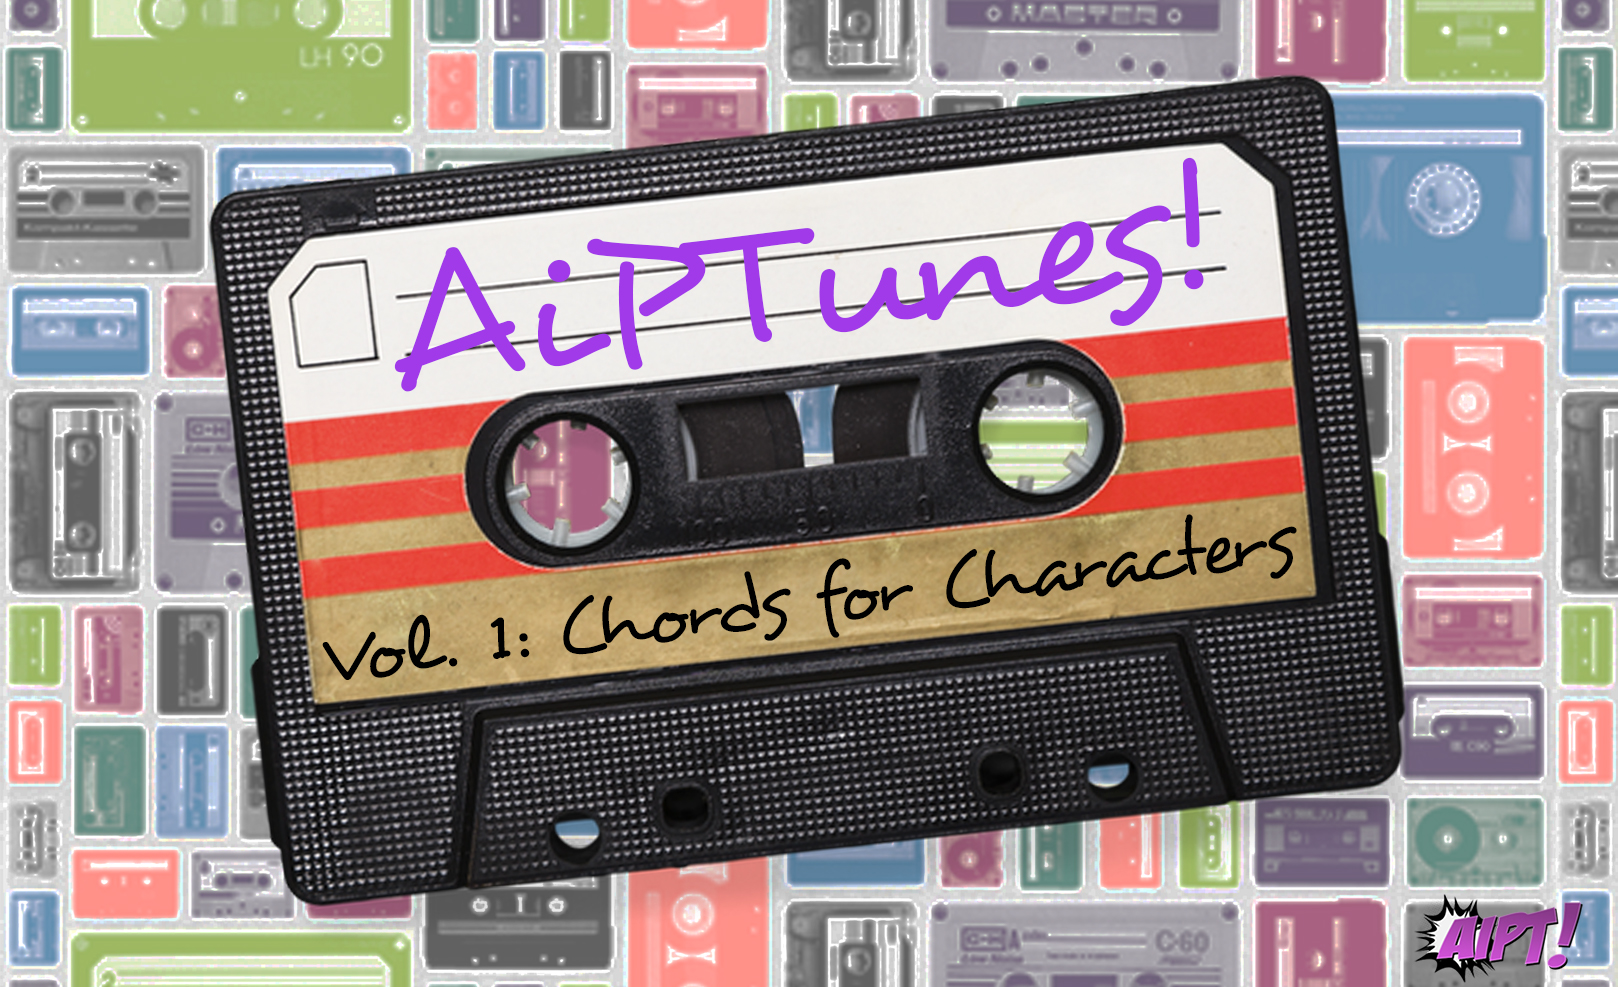 AiPTunes! Vol. 1: Chords for Characters